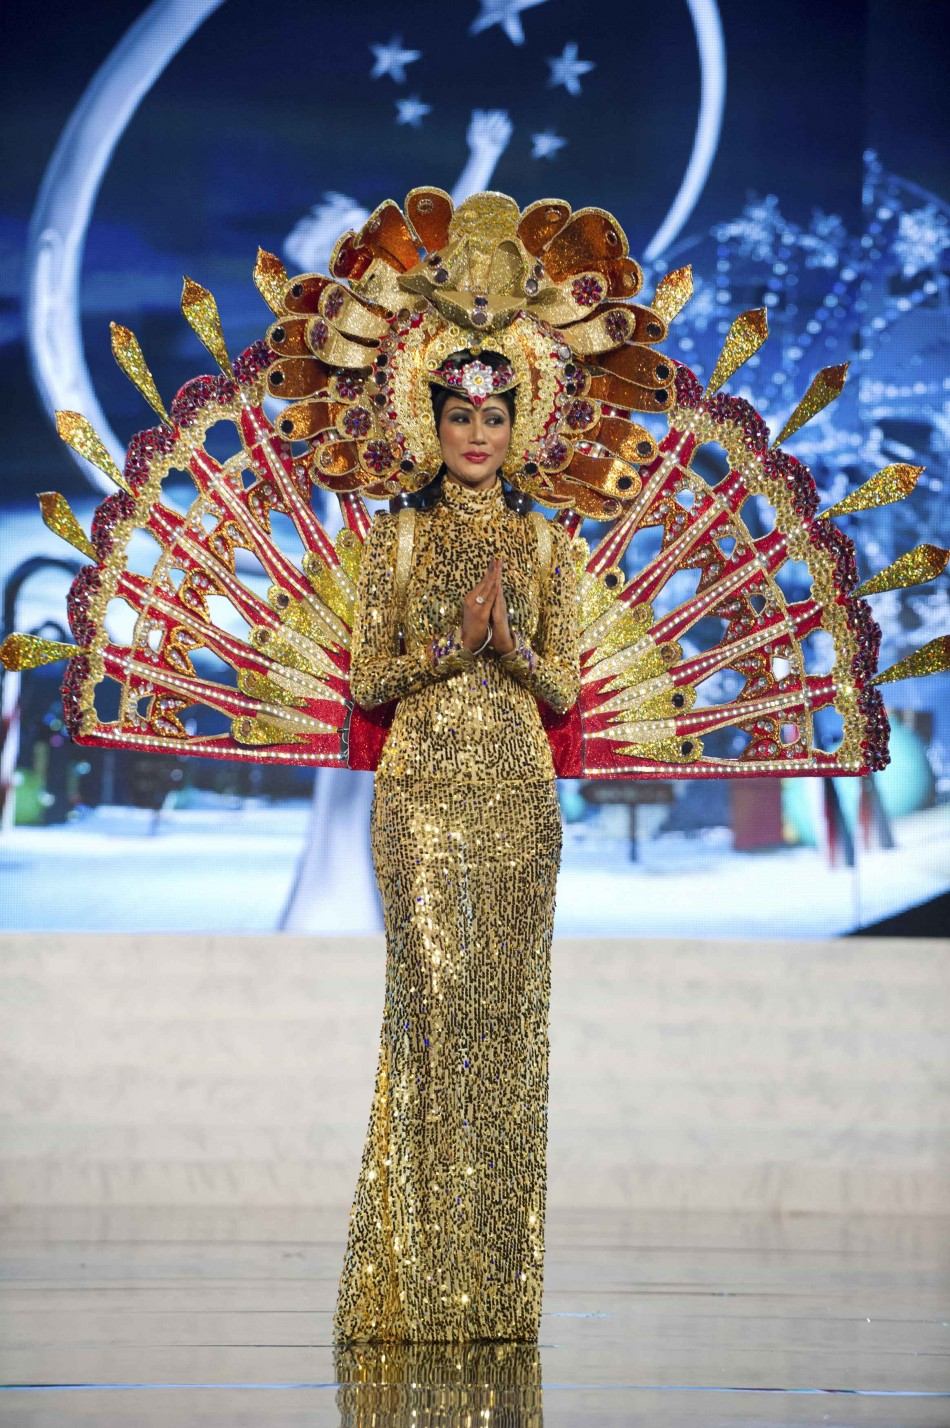 Miss Sri Lanka Sabrina Herft on stage at the 2012 Miss Universe National Costume Show at PH Live in Las Vegas